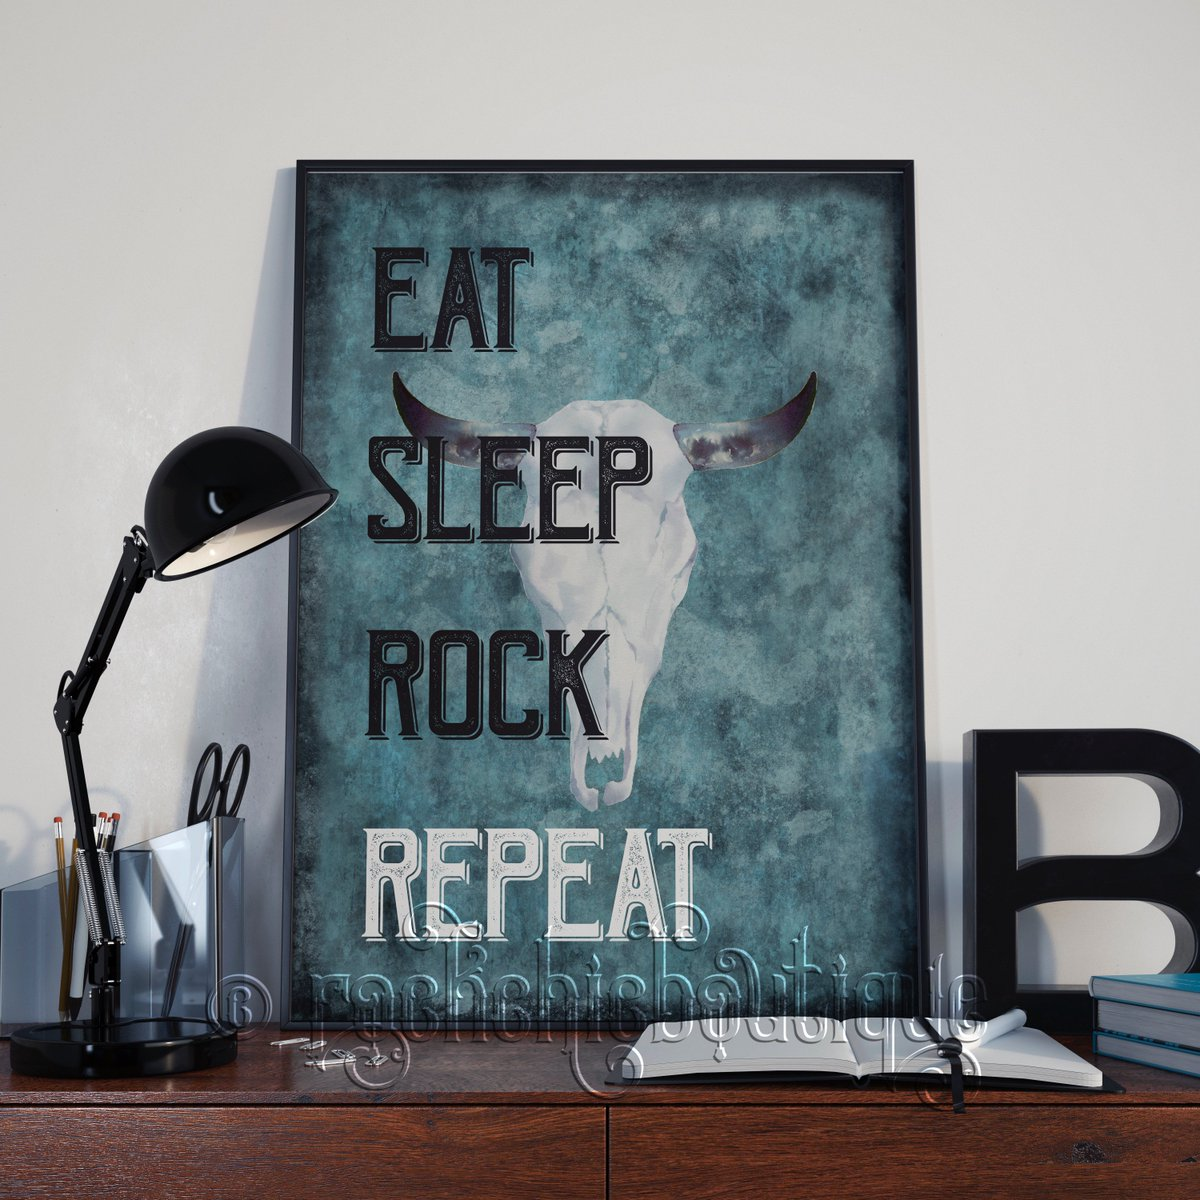 test Twitter Media - ⚡️ Eat Sleep Rock Repeat ⚡️ Heavy Metal lovers and Rock Gods rejoice, if music is life then this is the print for you! Alternative artwork for your walls https://t.co/bhPPYprwrY #QueenOf #Alternative #WallArt #ArtistsOnTwitter #ShopIndie #Etsy #HeavyMetal https://t.co/WXvxh8Ar7e